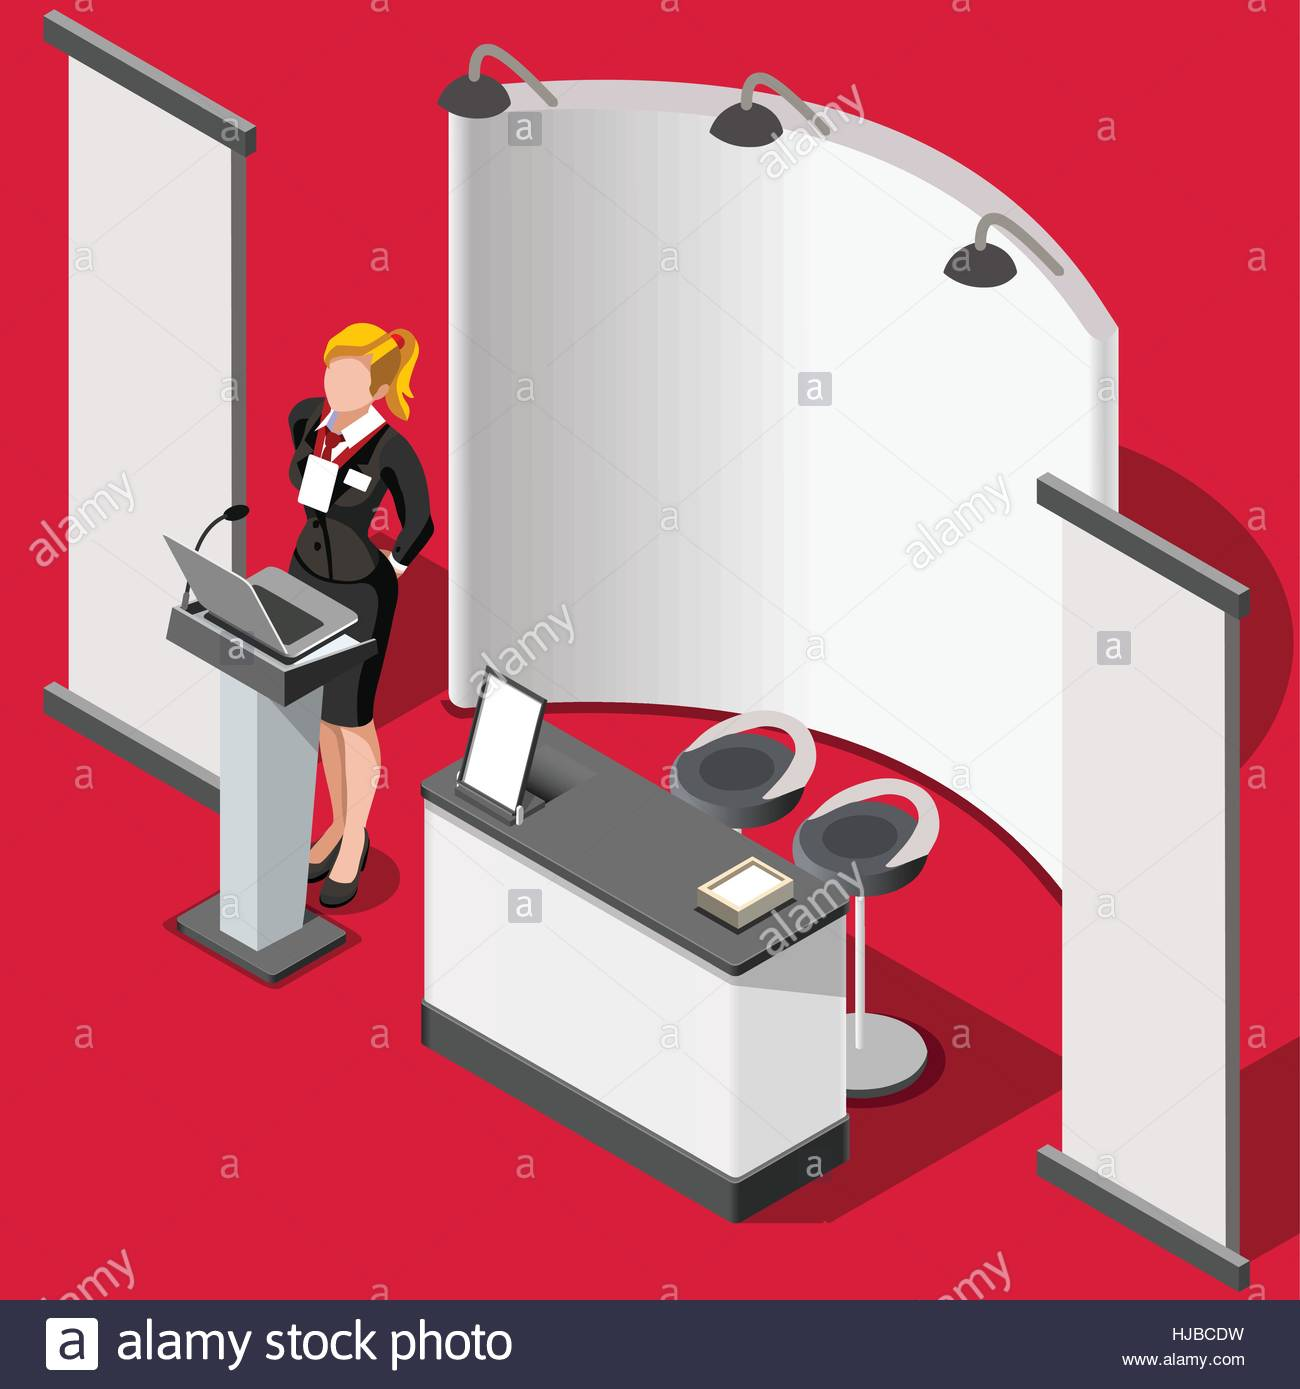 Exhibition Stand Design Vector : Exhibition booth stand desk roll up display panel d